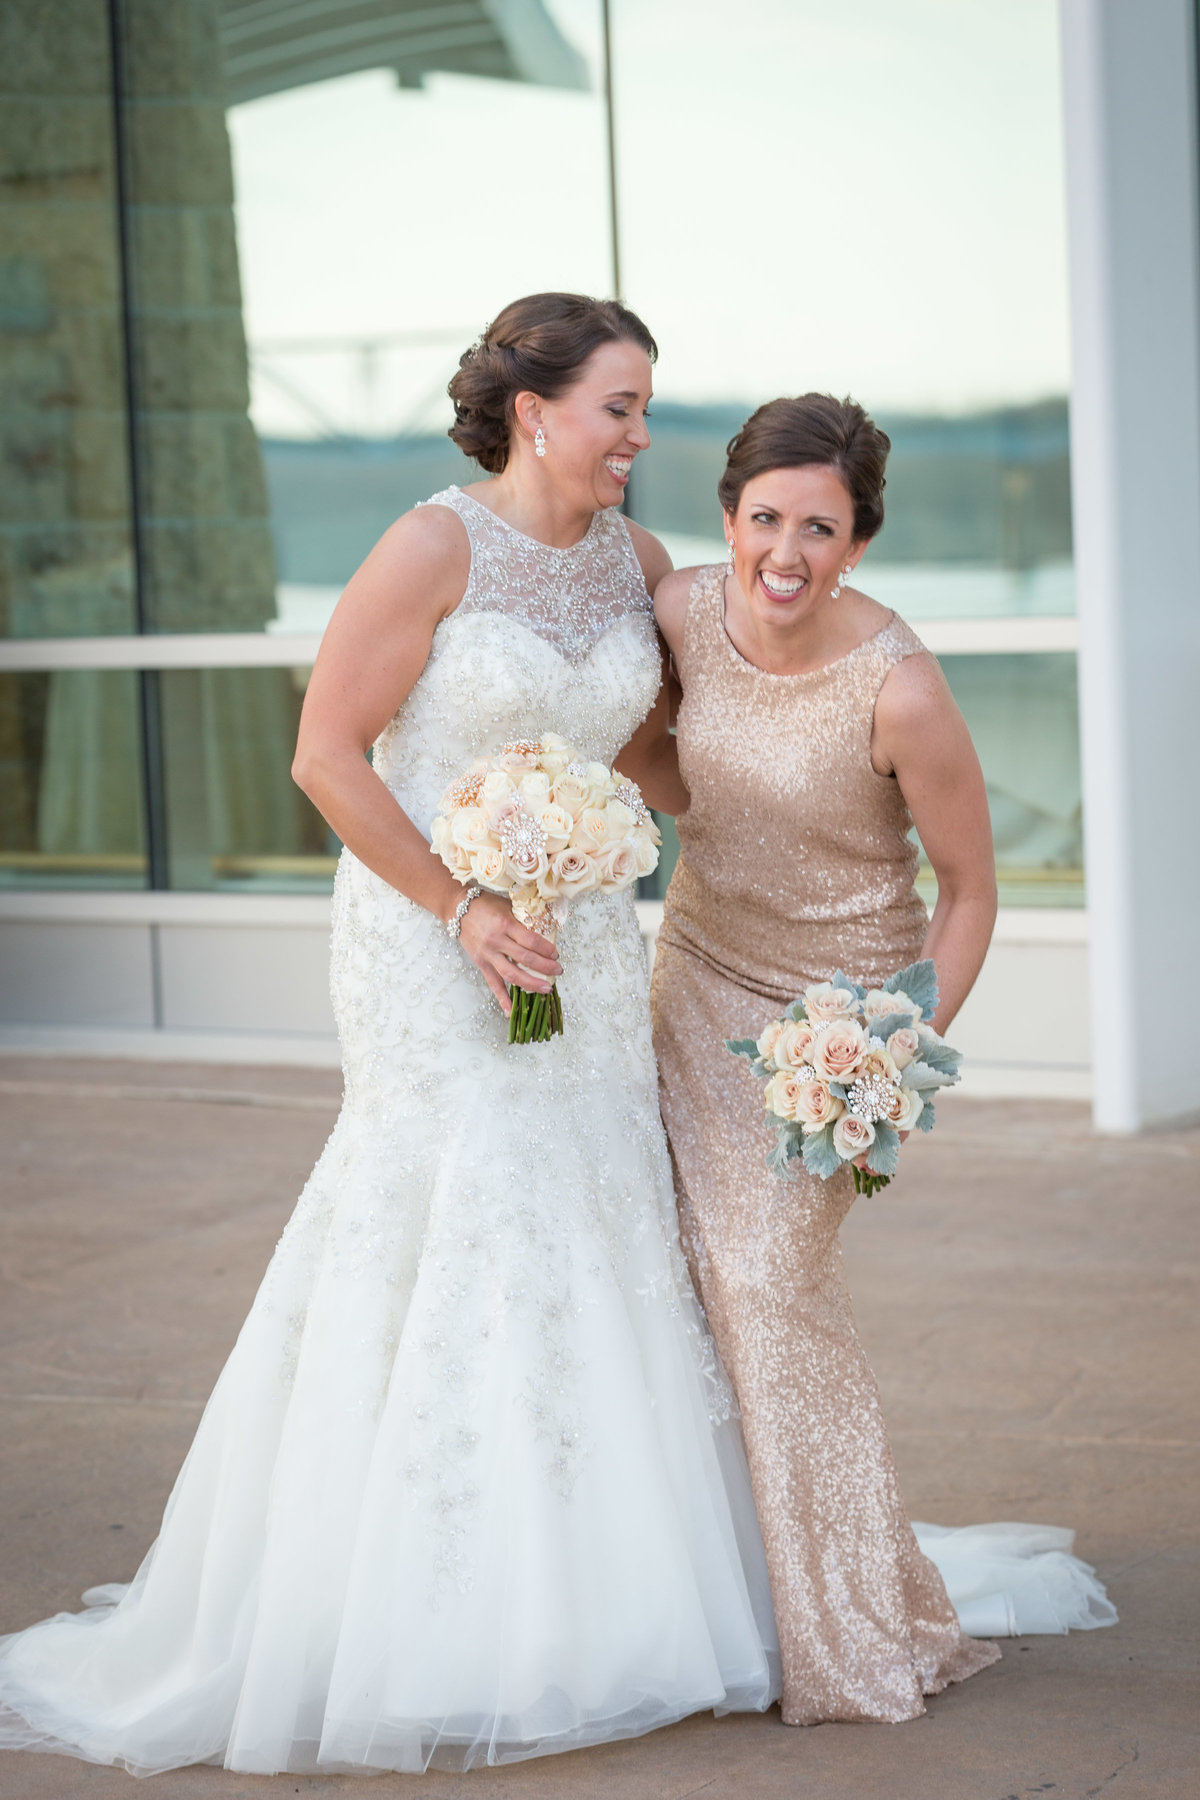 Grand River Center Wedding